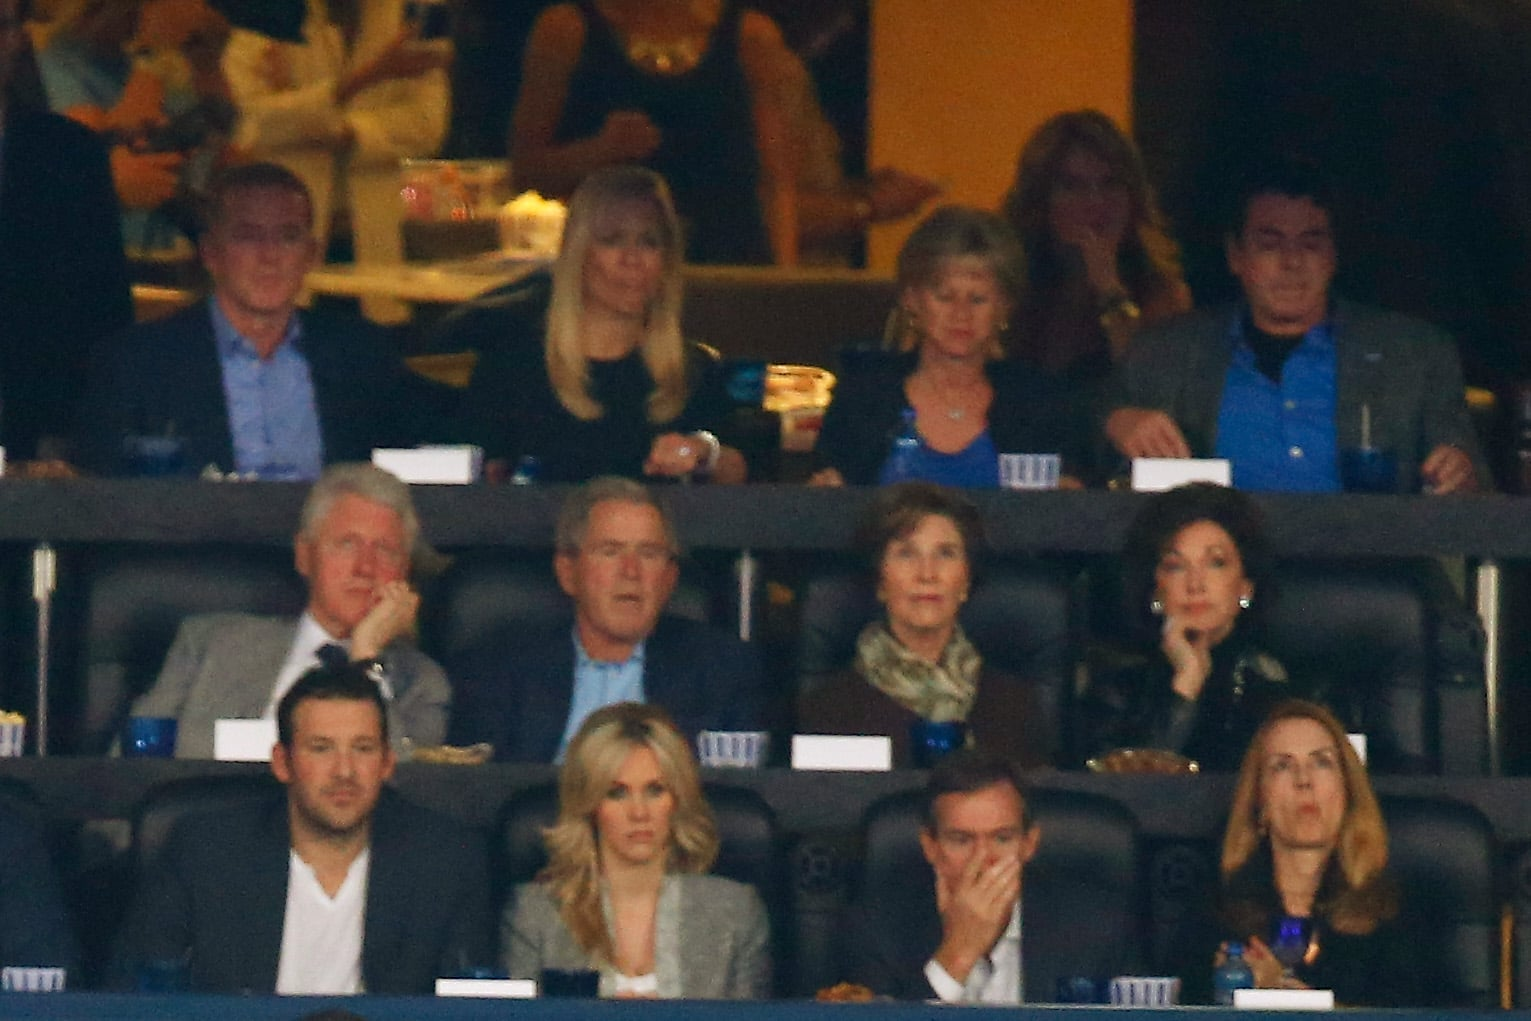 So, Were Bush and Clinton Rooting For Different Teams?